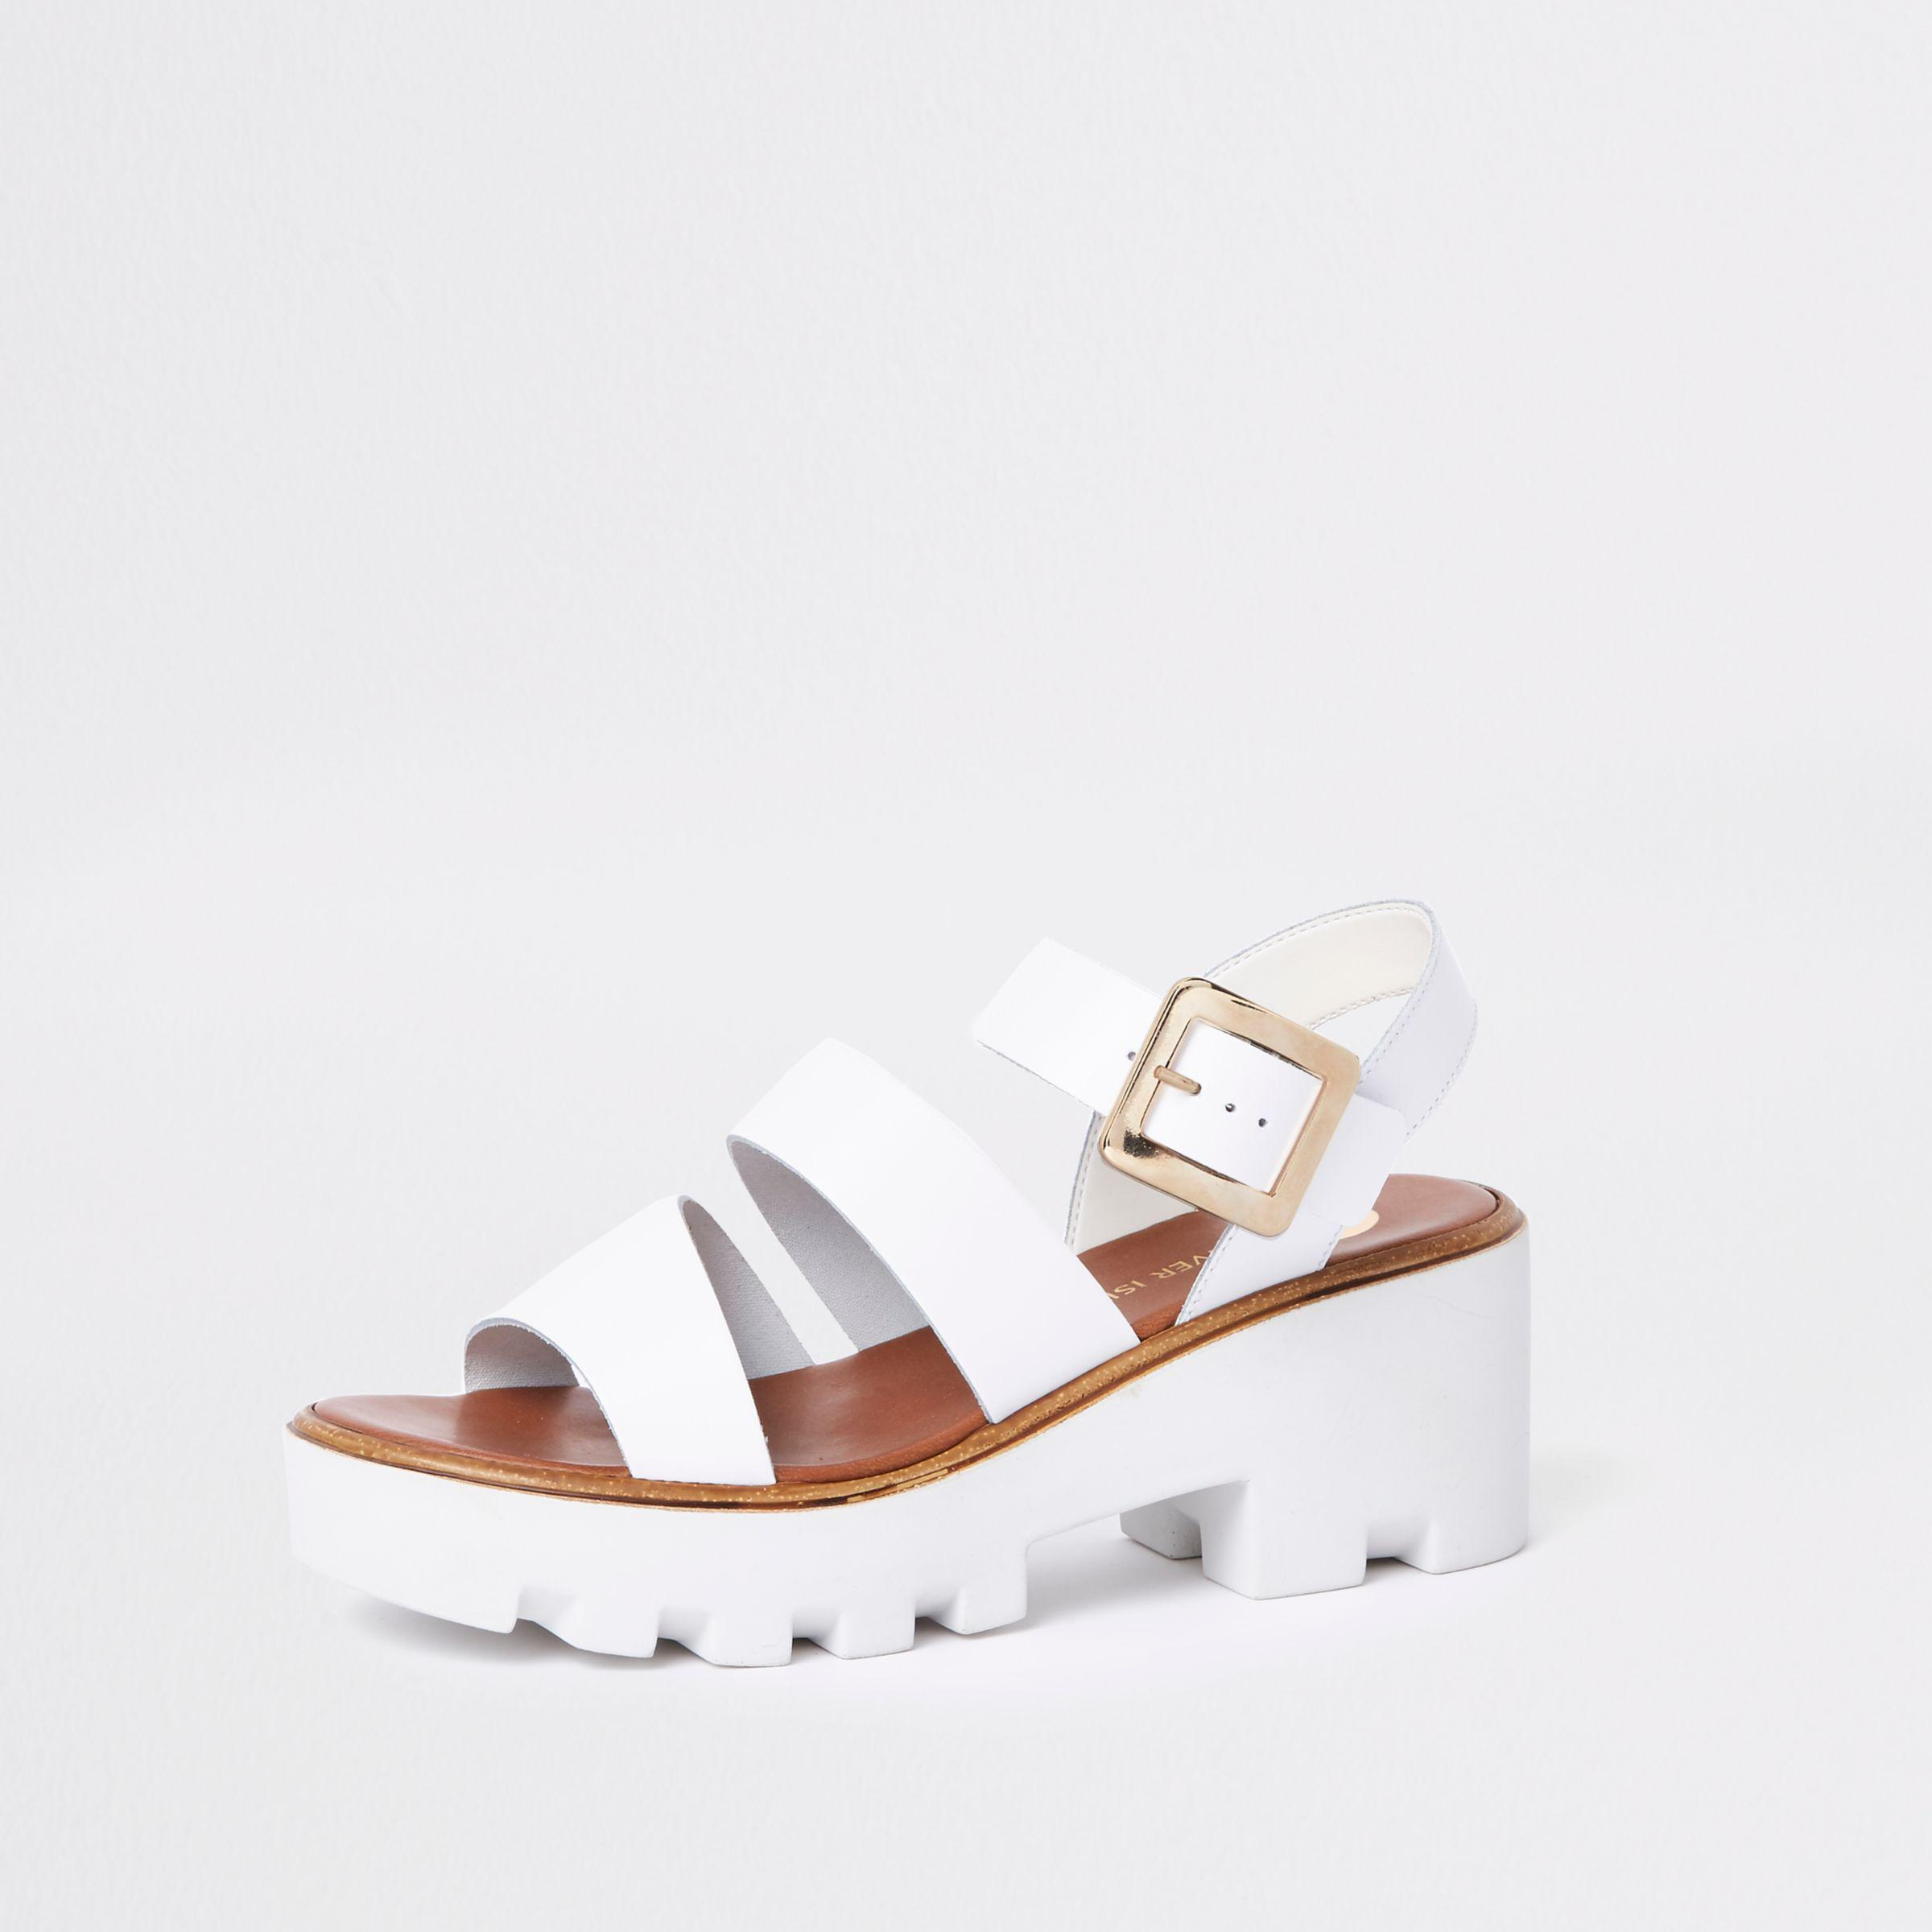 4be5c8b346c Lyst - River Island White Chunky Sandals in White